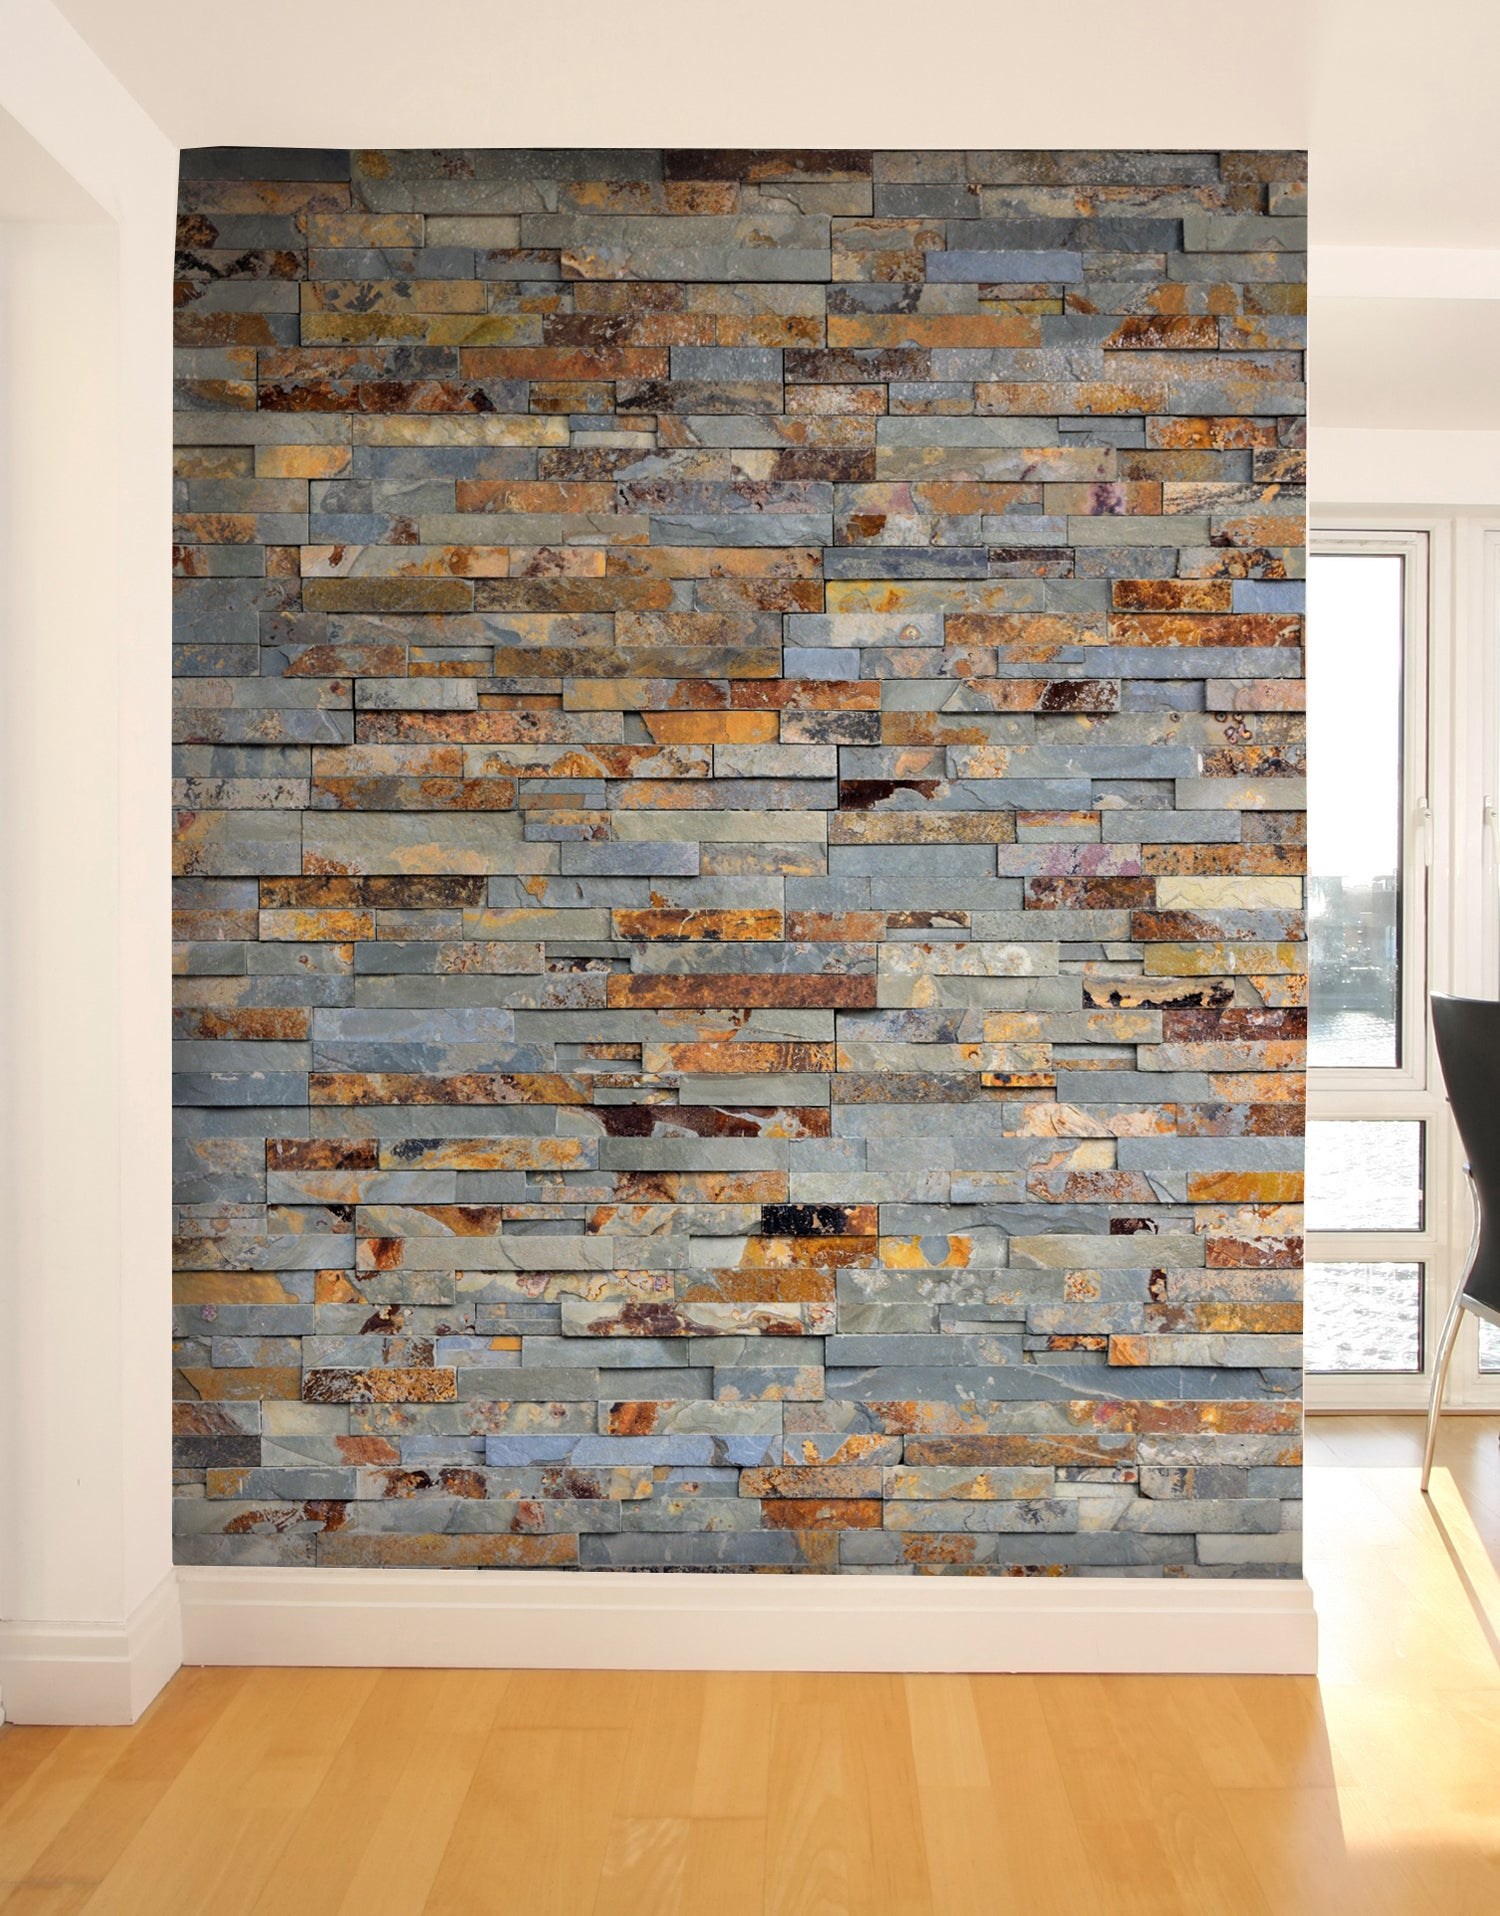 Colorful Rustic Natural Slate Brick Stone Wall Mural Sticker #6145